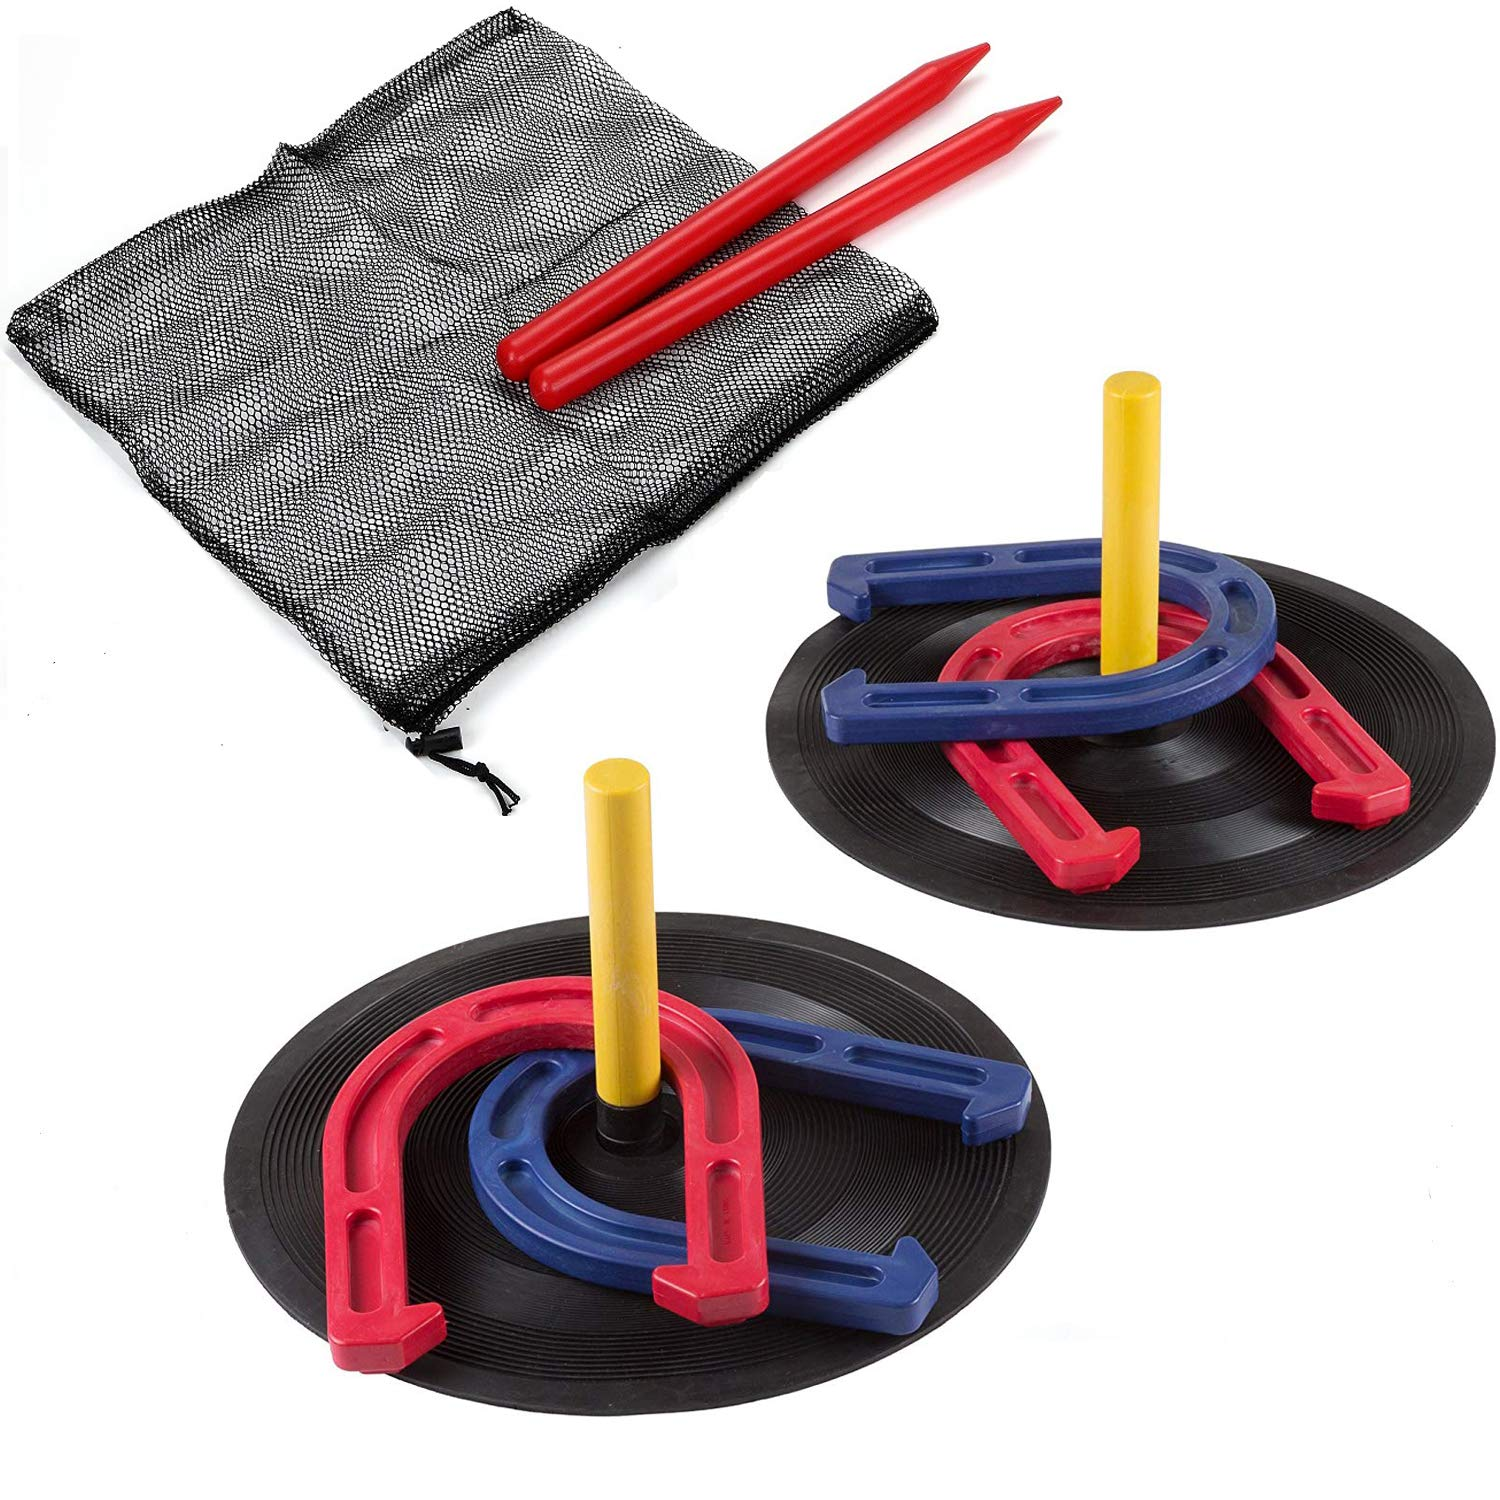 Rubber Horseshoes Game Set for Outdoor Indoor Games-Includes 4 Horseshoes,2 Pegs,2 Rubber Mats,2 Plastic dowels.1 Mesh bag-Beach Games Perfect for Backyard and Fun for Kids and Adults!(Red&Blue) by Win SPORTS